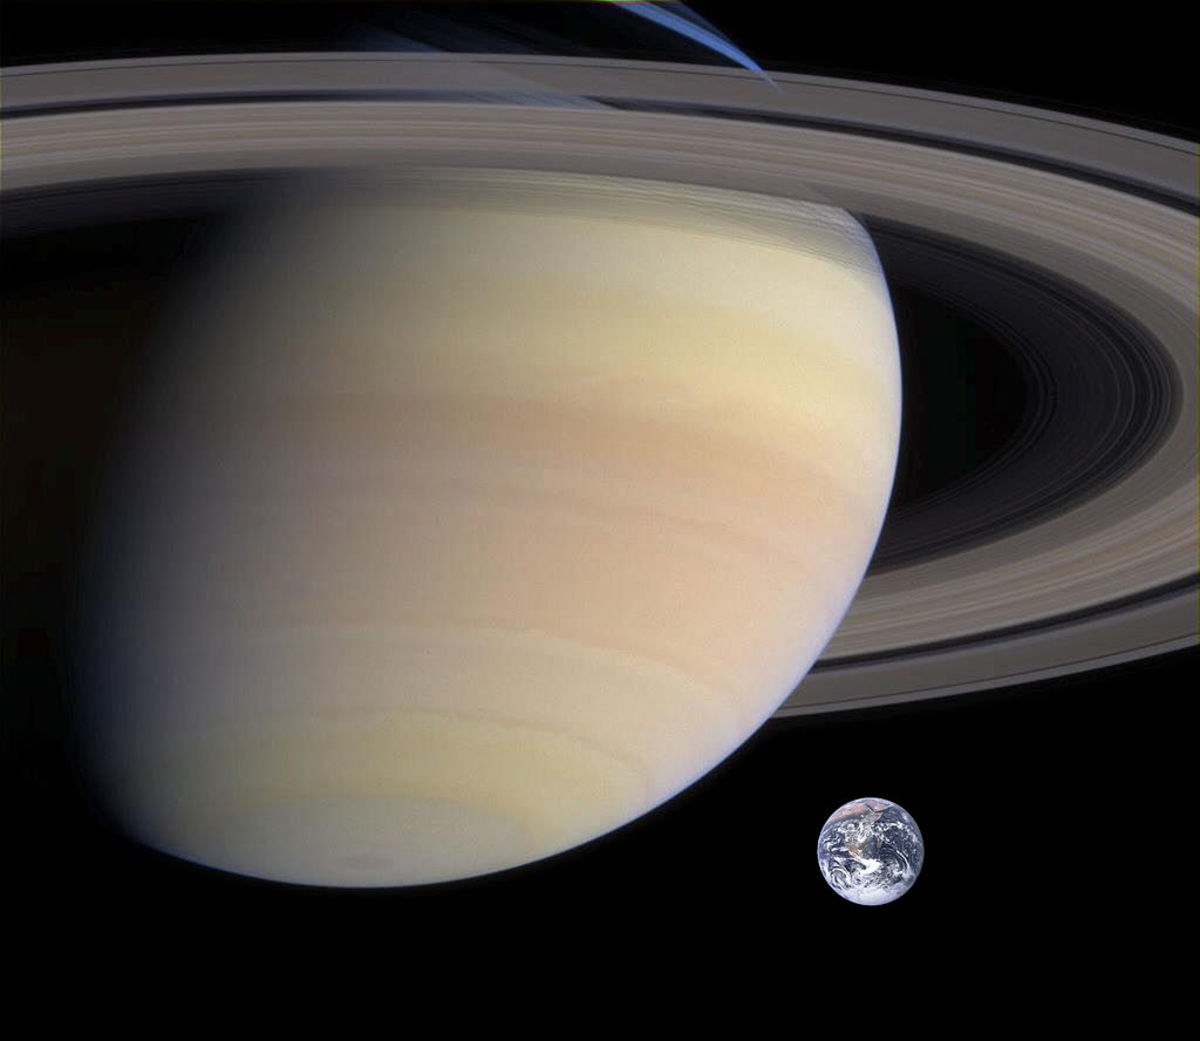 Saturn's size (in comparison to Earth)